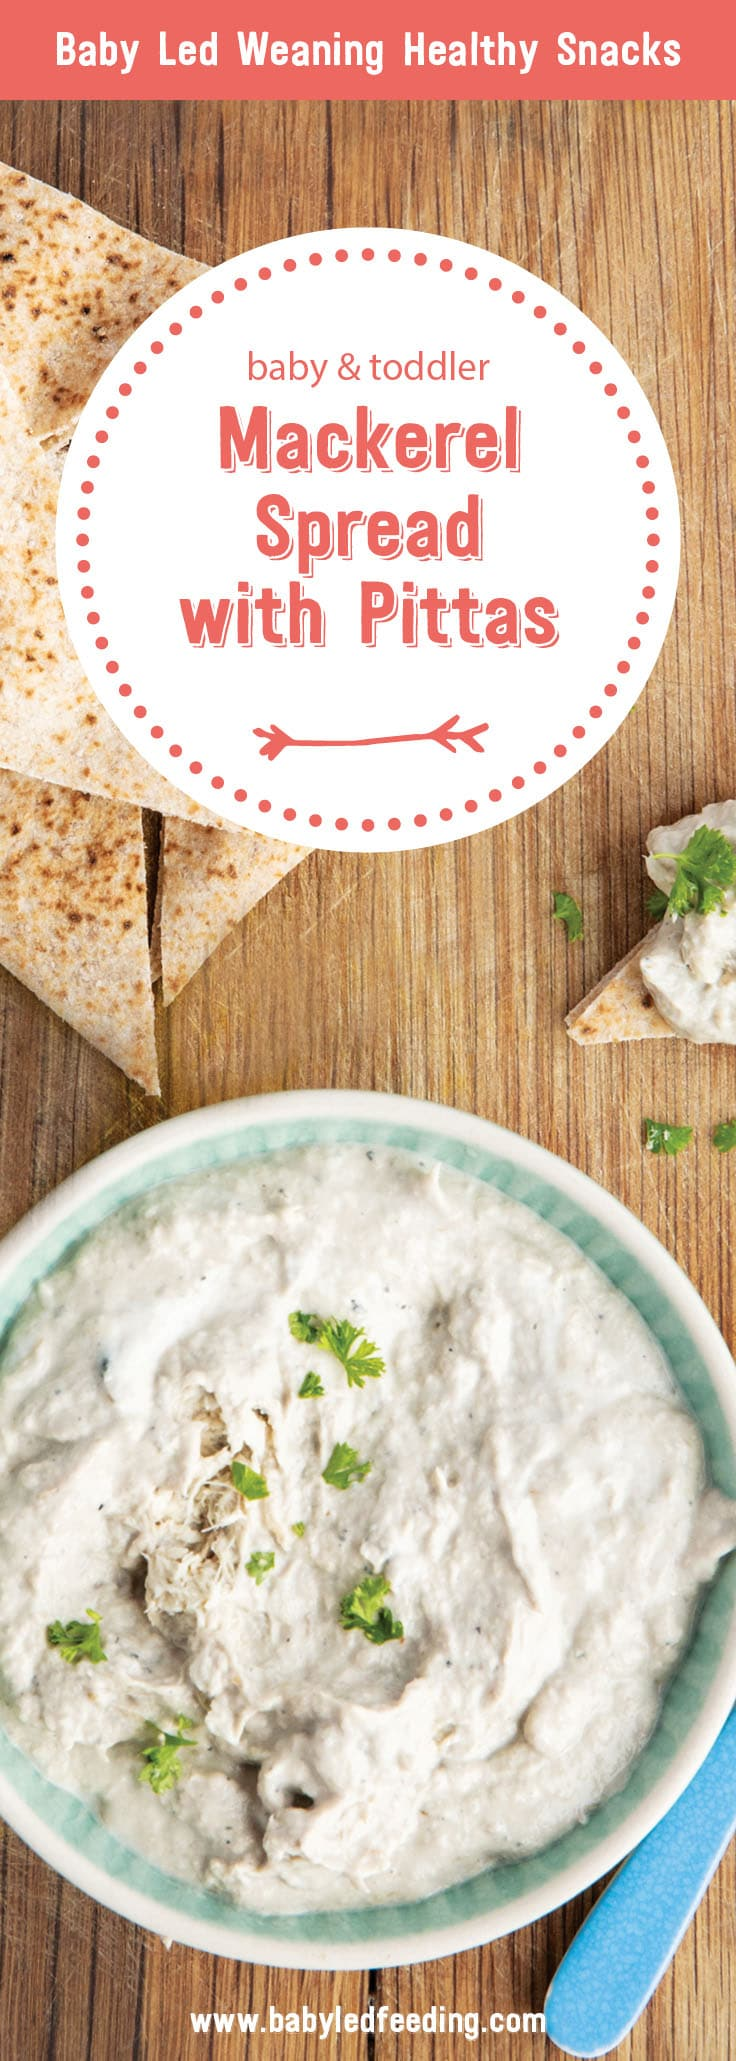 Mackerel spread is a perfectly scrumptious baby led weaning lunch that's packed to the brim with heart and brain healthy omega 3s. Serve with fresh veggies like carrots or celery and whole wheat pita. Dips are a perfect way to get picky eaters to eat nutritious foods. #fingerfood #babyledweaninglunch #babyledweaning #babyledfeeding #omega3